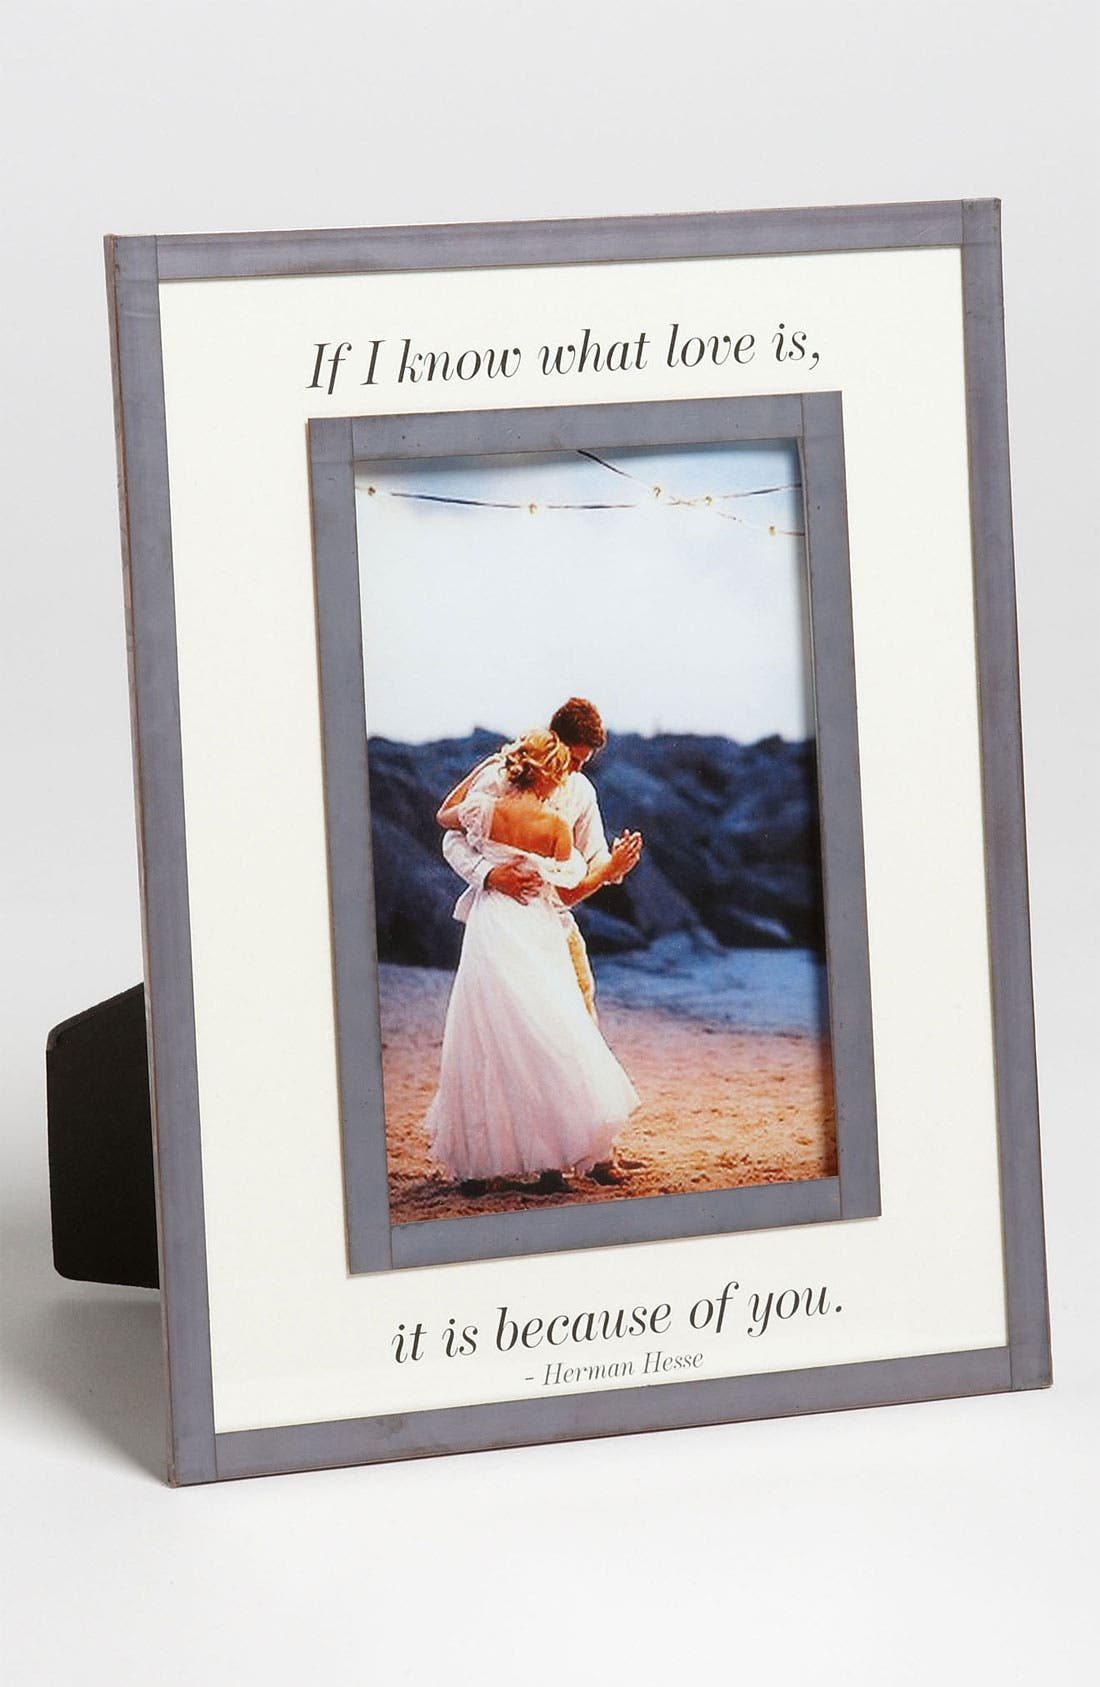 Alternate Image 1 Selected - Ben's Garden If I Know What Love Is Picture Frame